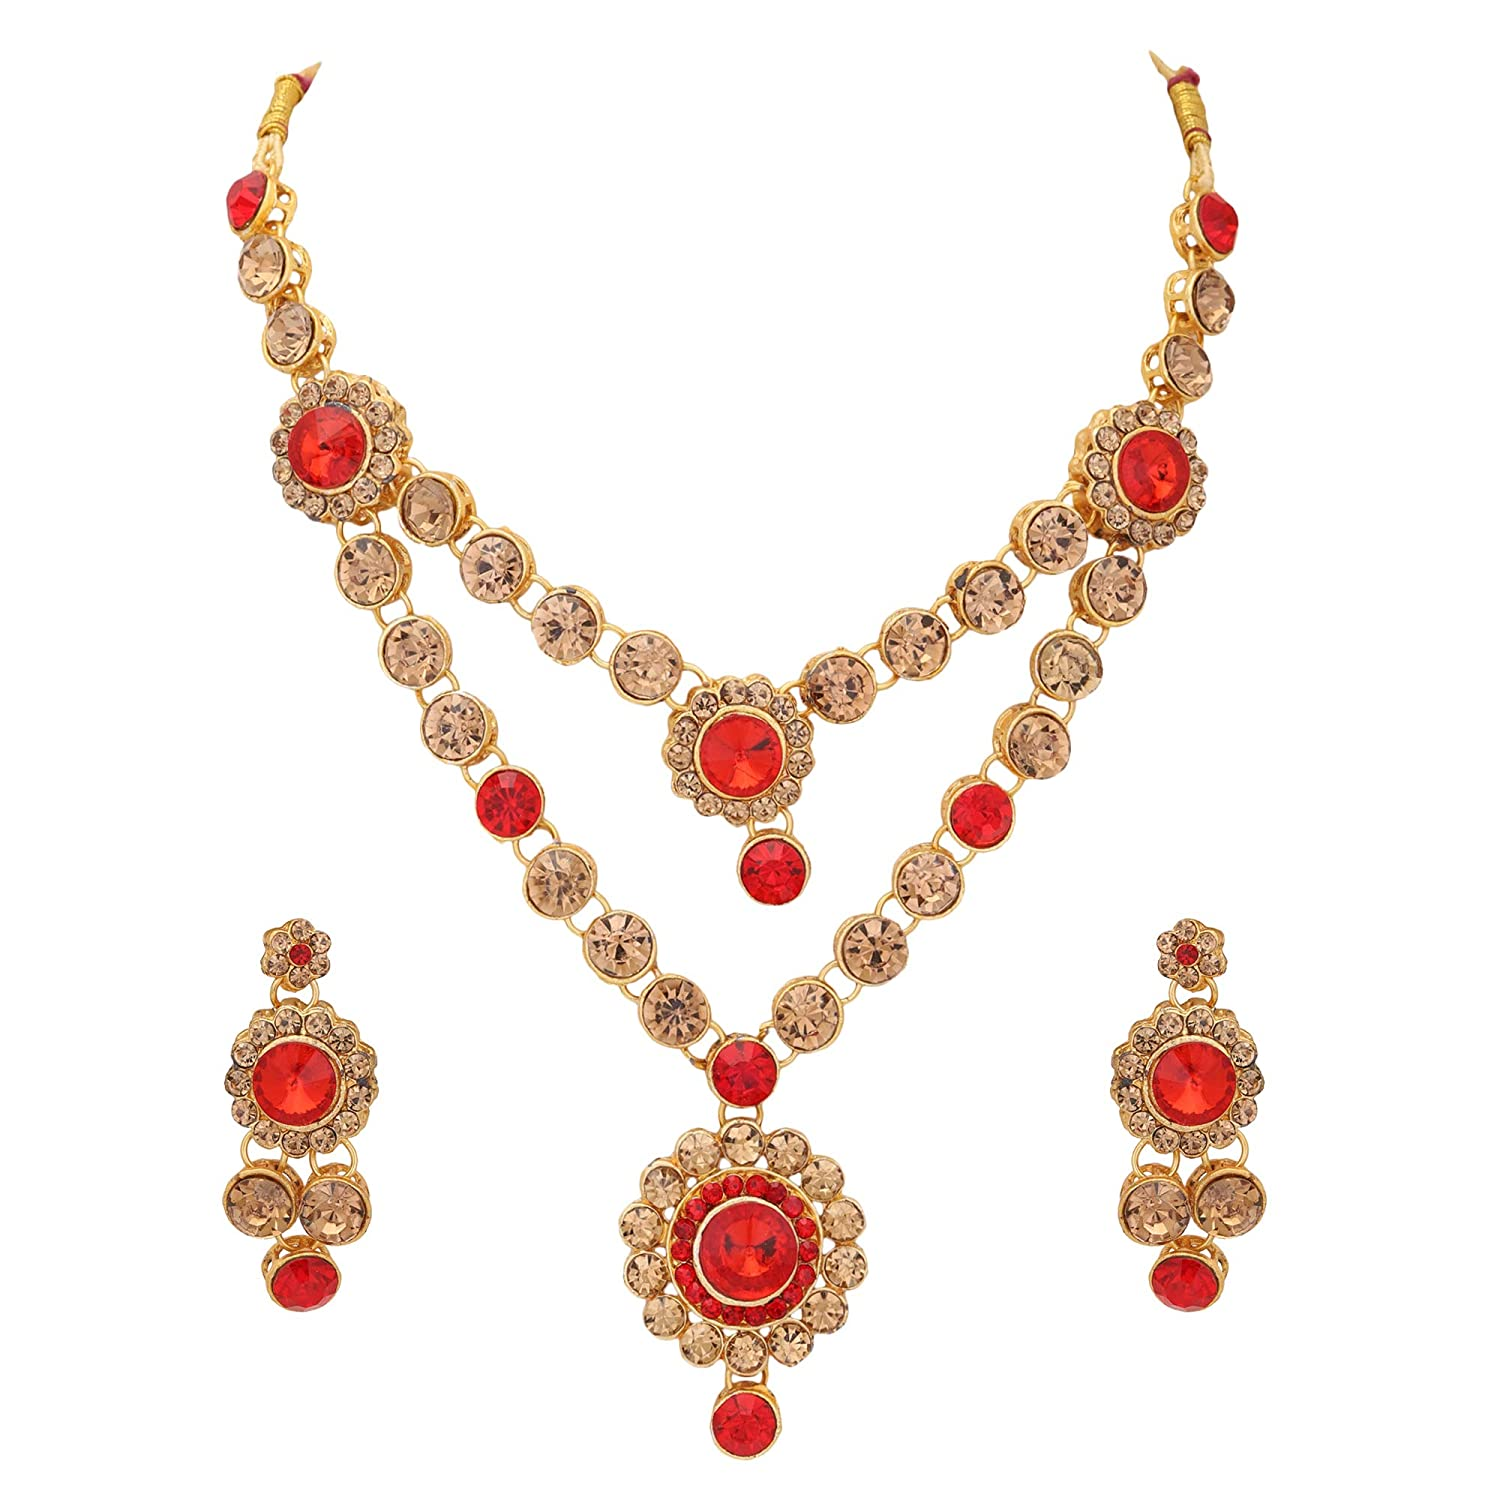 Buy Ziku Jewelry Ethnic Layered Beauty Necklace Charm Earring